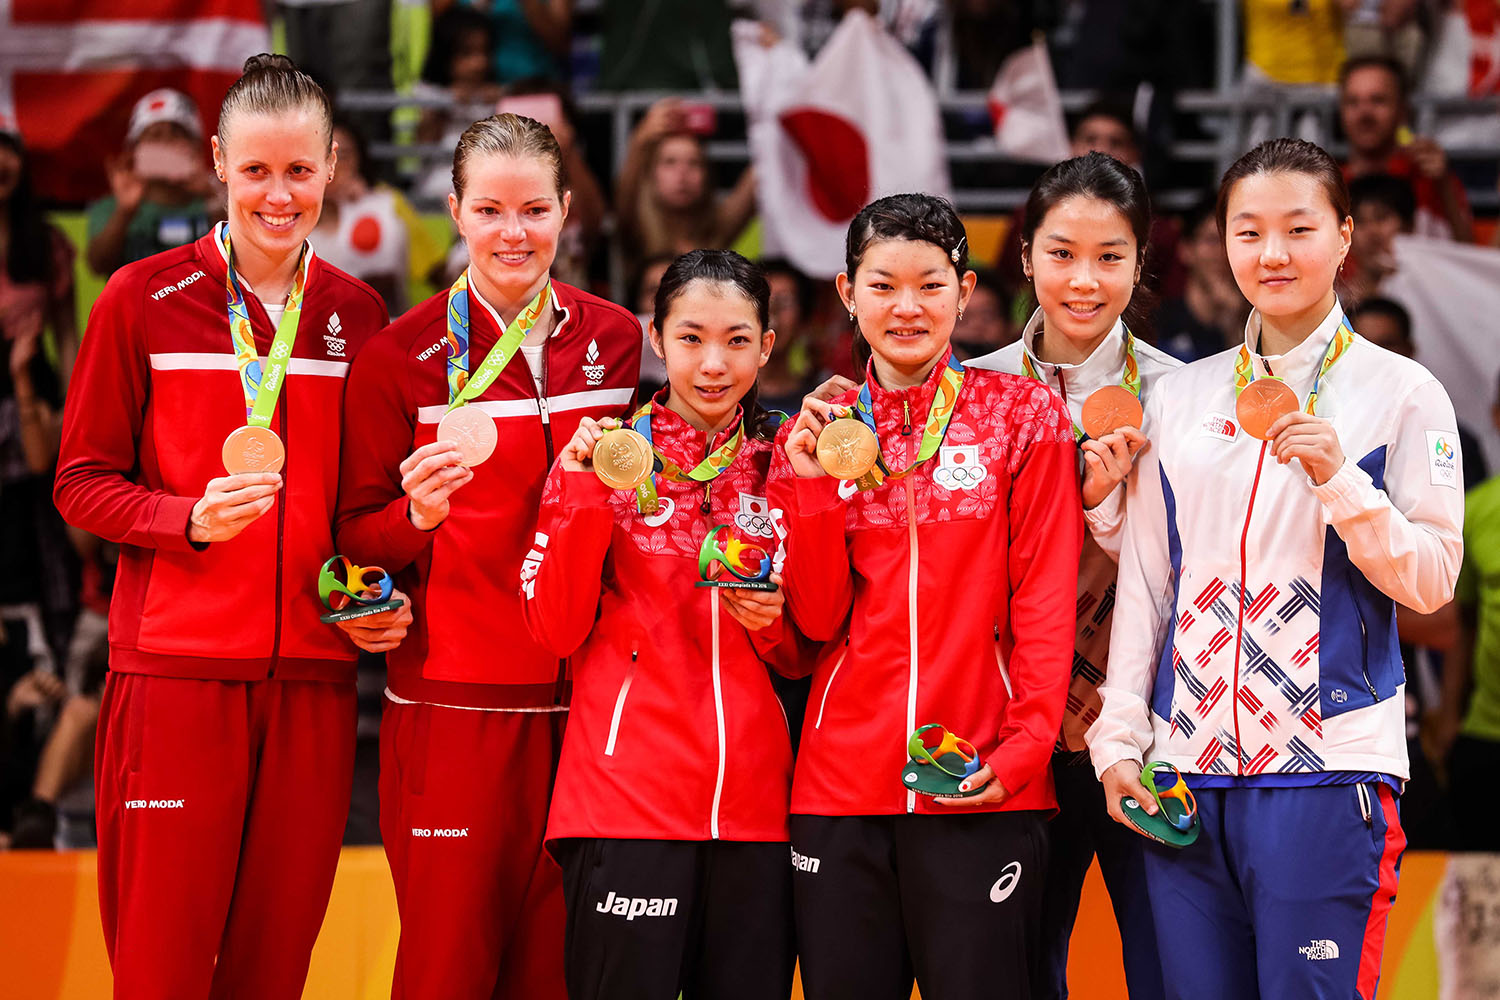 Women's Doubles medallists - presentation ceremony